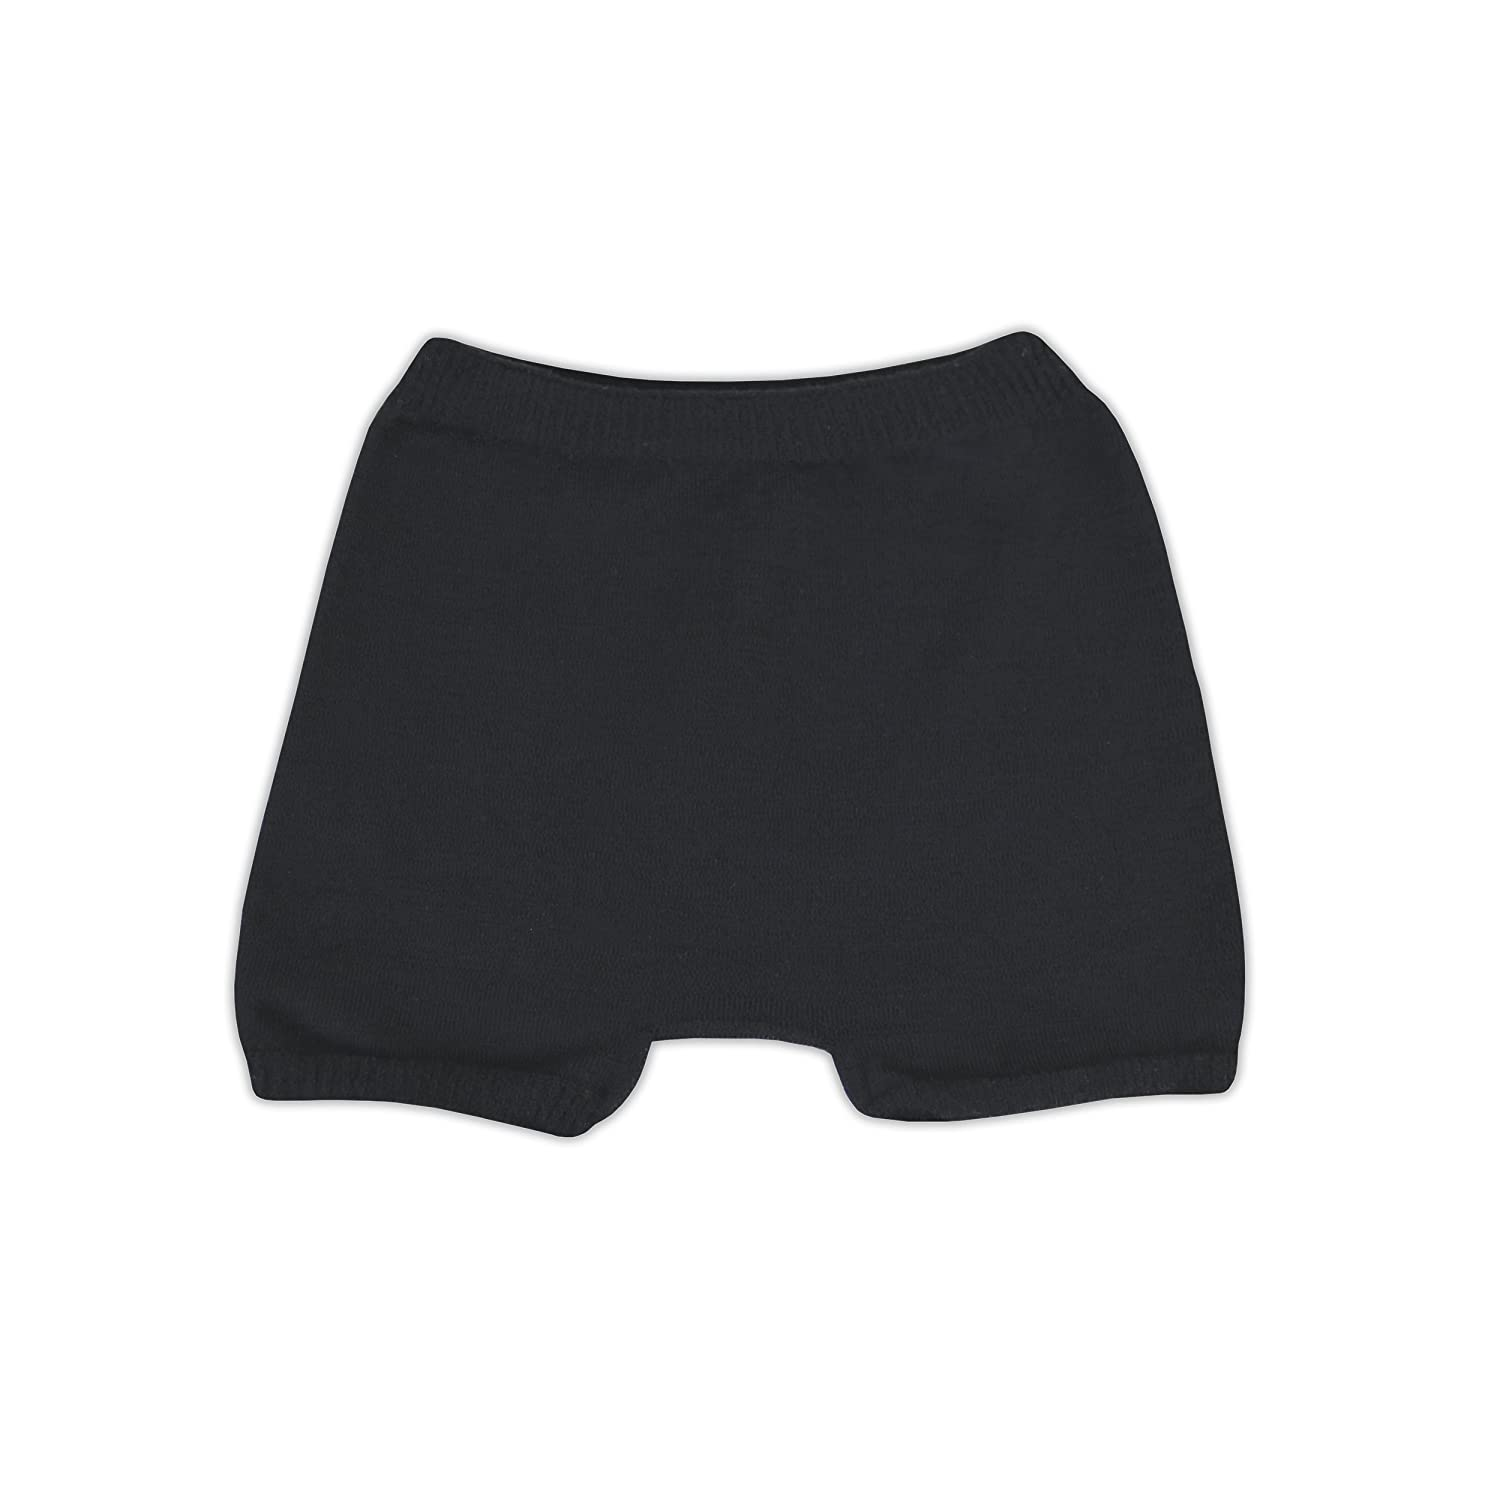 SmartKnitKIDS Boxer Brief Style Seamless Sensitivity Undies